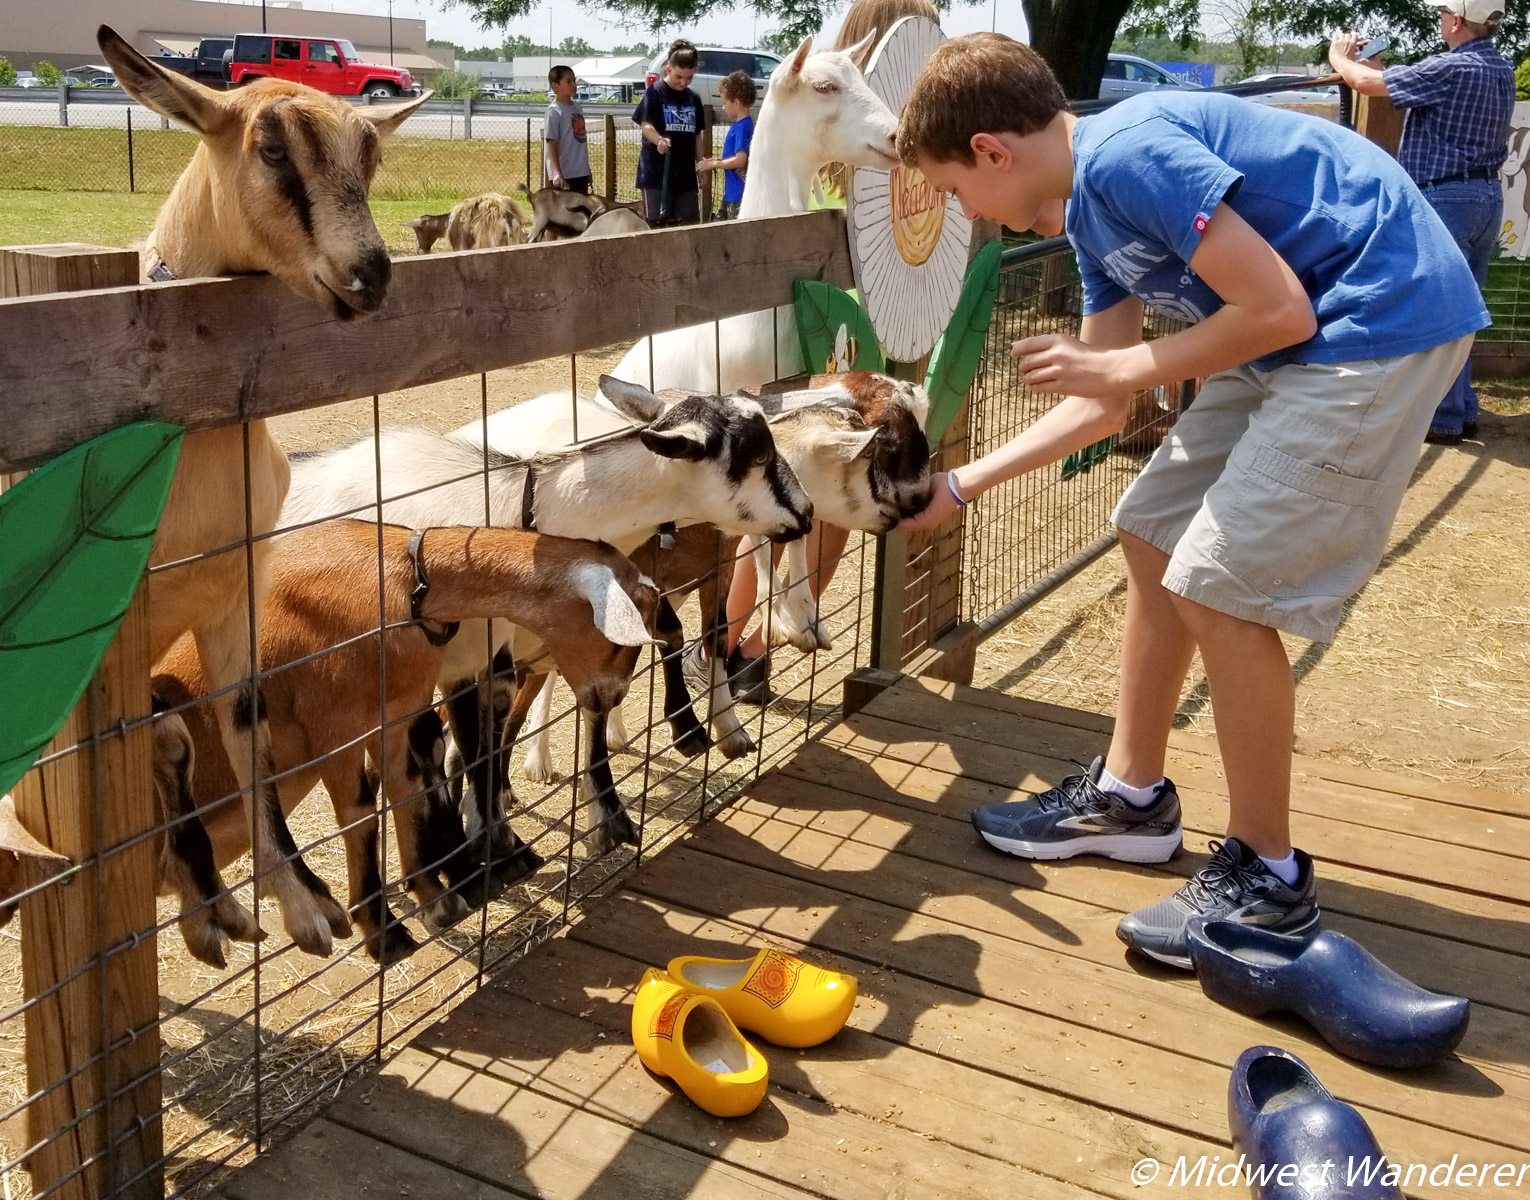 Feeding the goats in the petting zoo